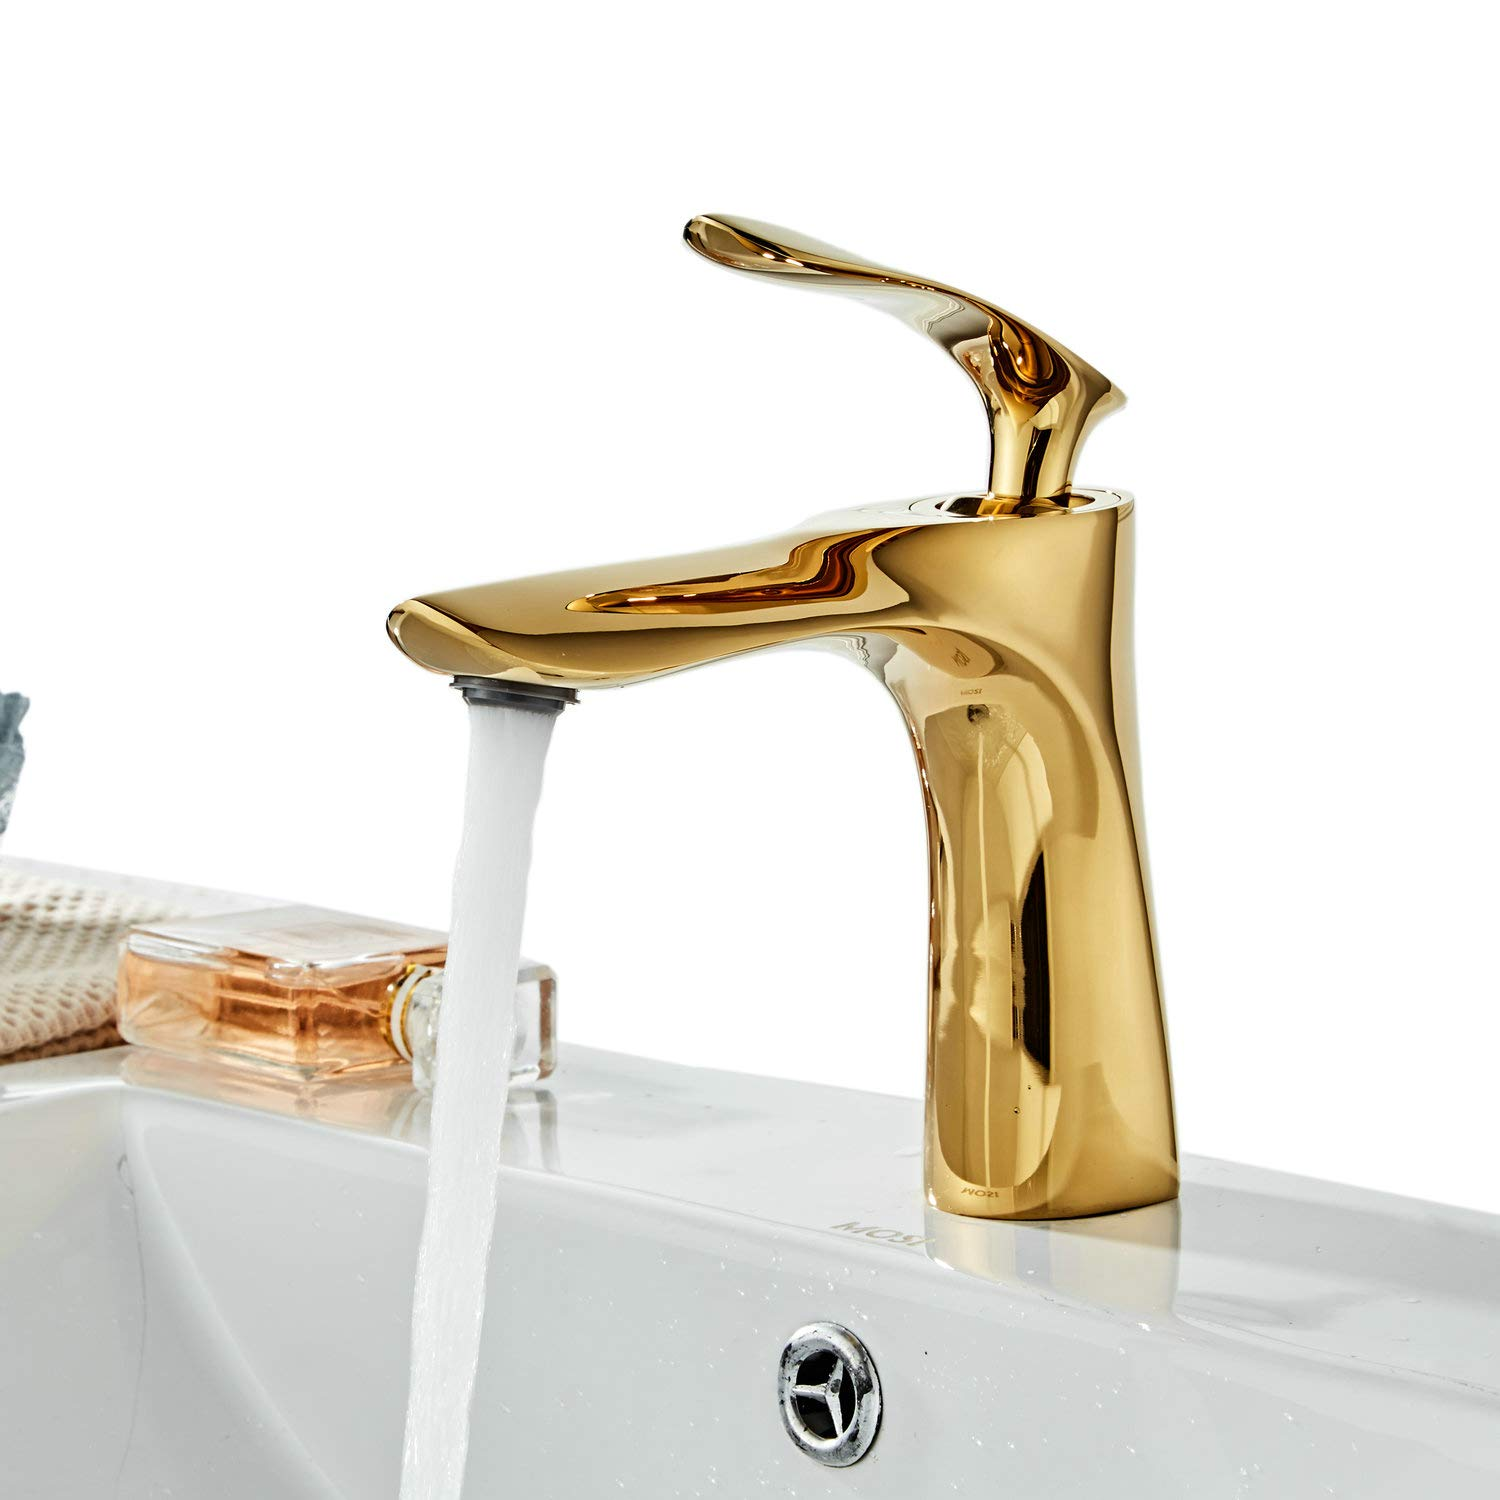 Tall Counter Top Basin Mixer Tap Curved Bathroom Sink Tap Designer Style,Chrome, XY1003CH,XINYU XINYU TRADE